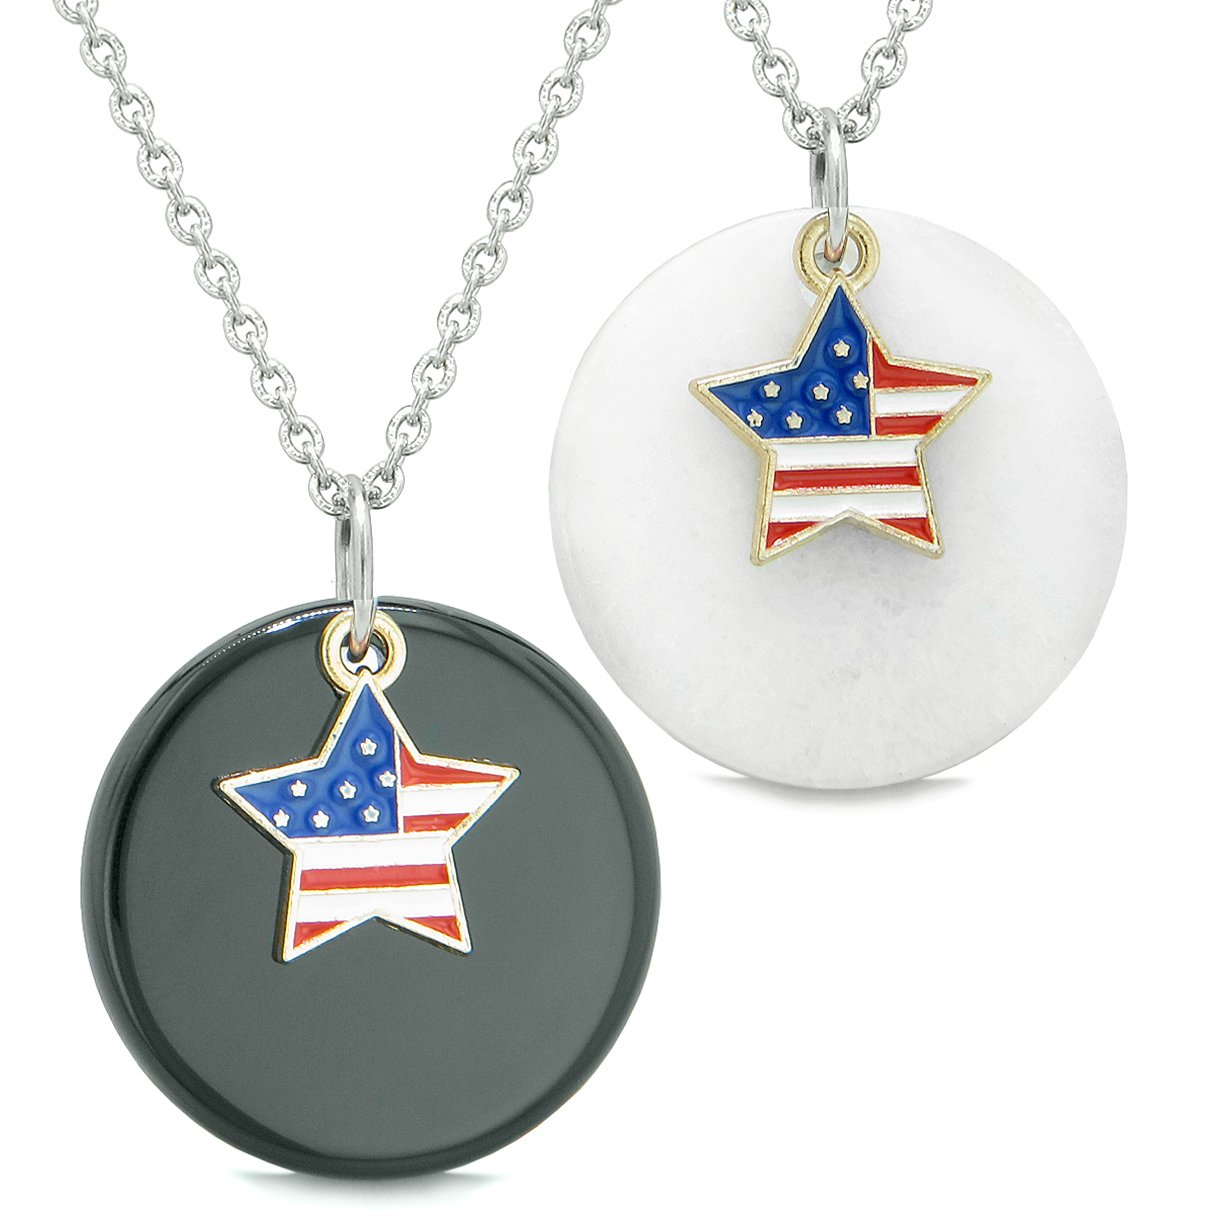 Proud American Flag Super Star Love Couples or BFF Set Black Agate White Quartz Amulet Necklaces